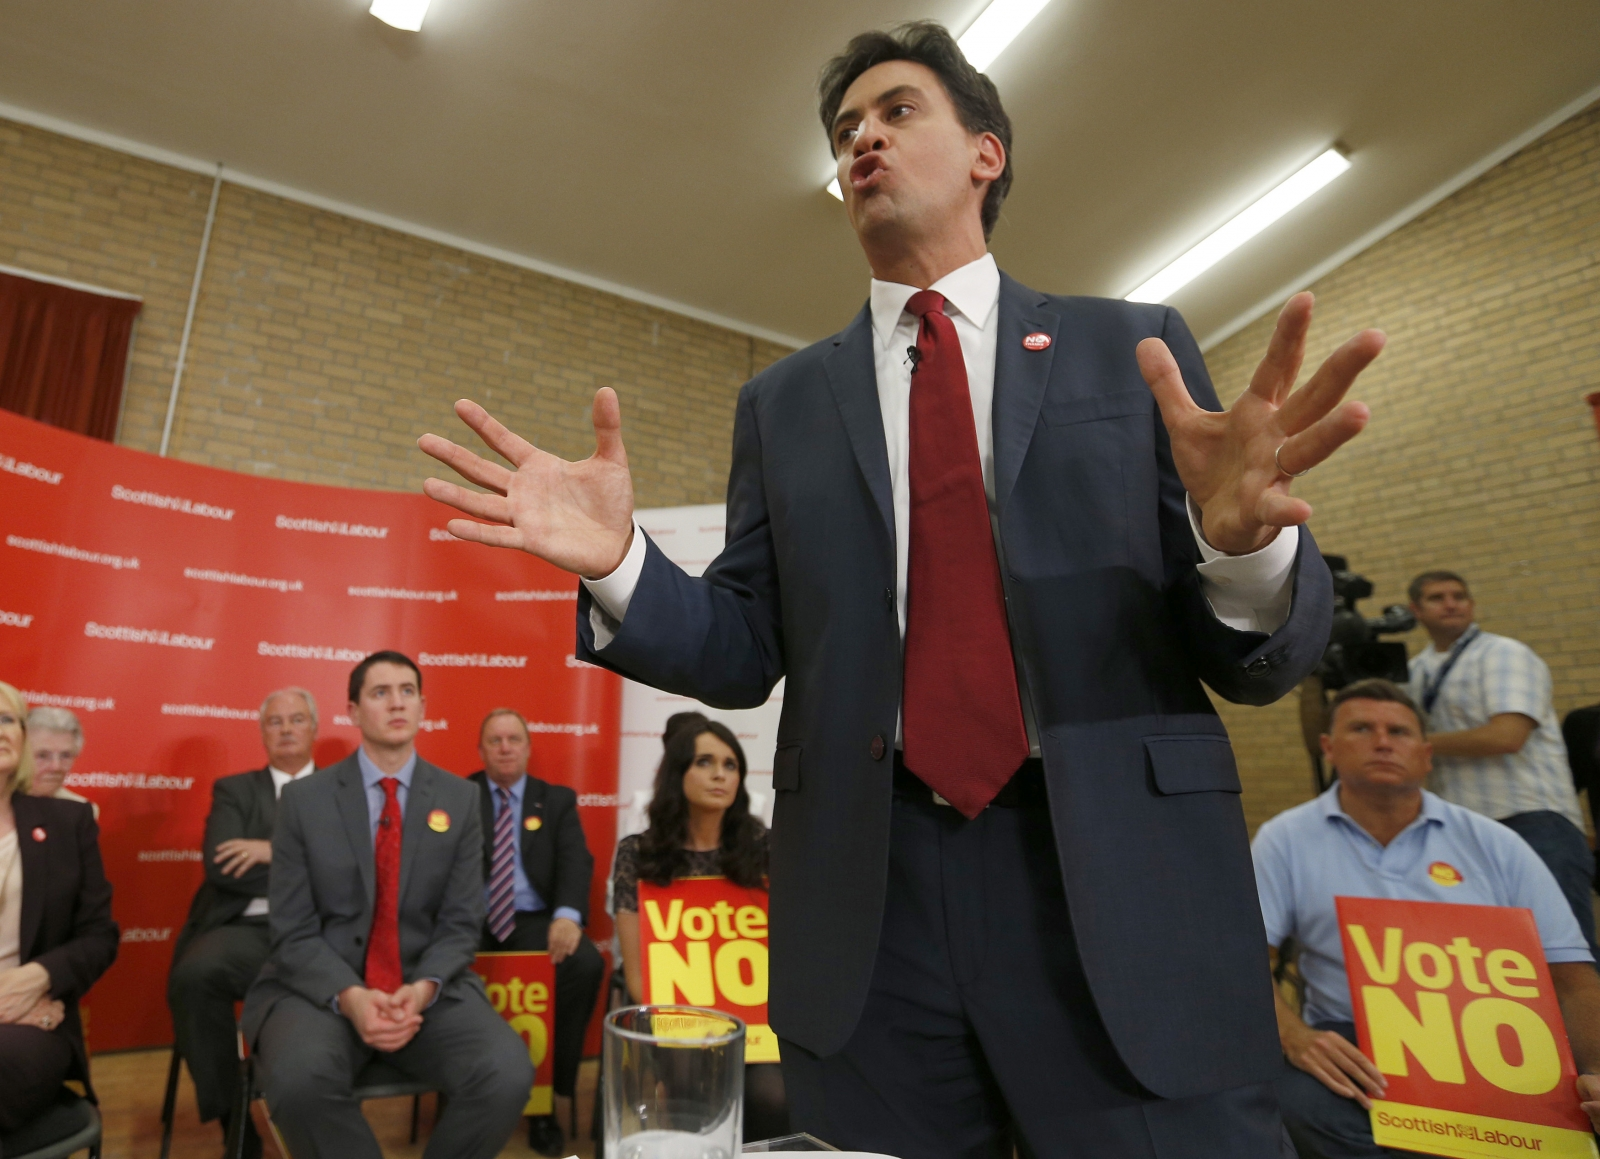 Britain's opposition Labour Party leader Ed Milliband speaks during a campaign meeting in Cumbernauld in Glasgow, Scotland September 10, 2014